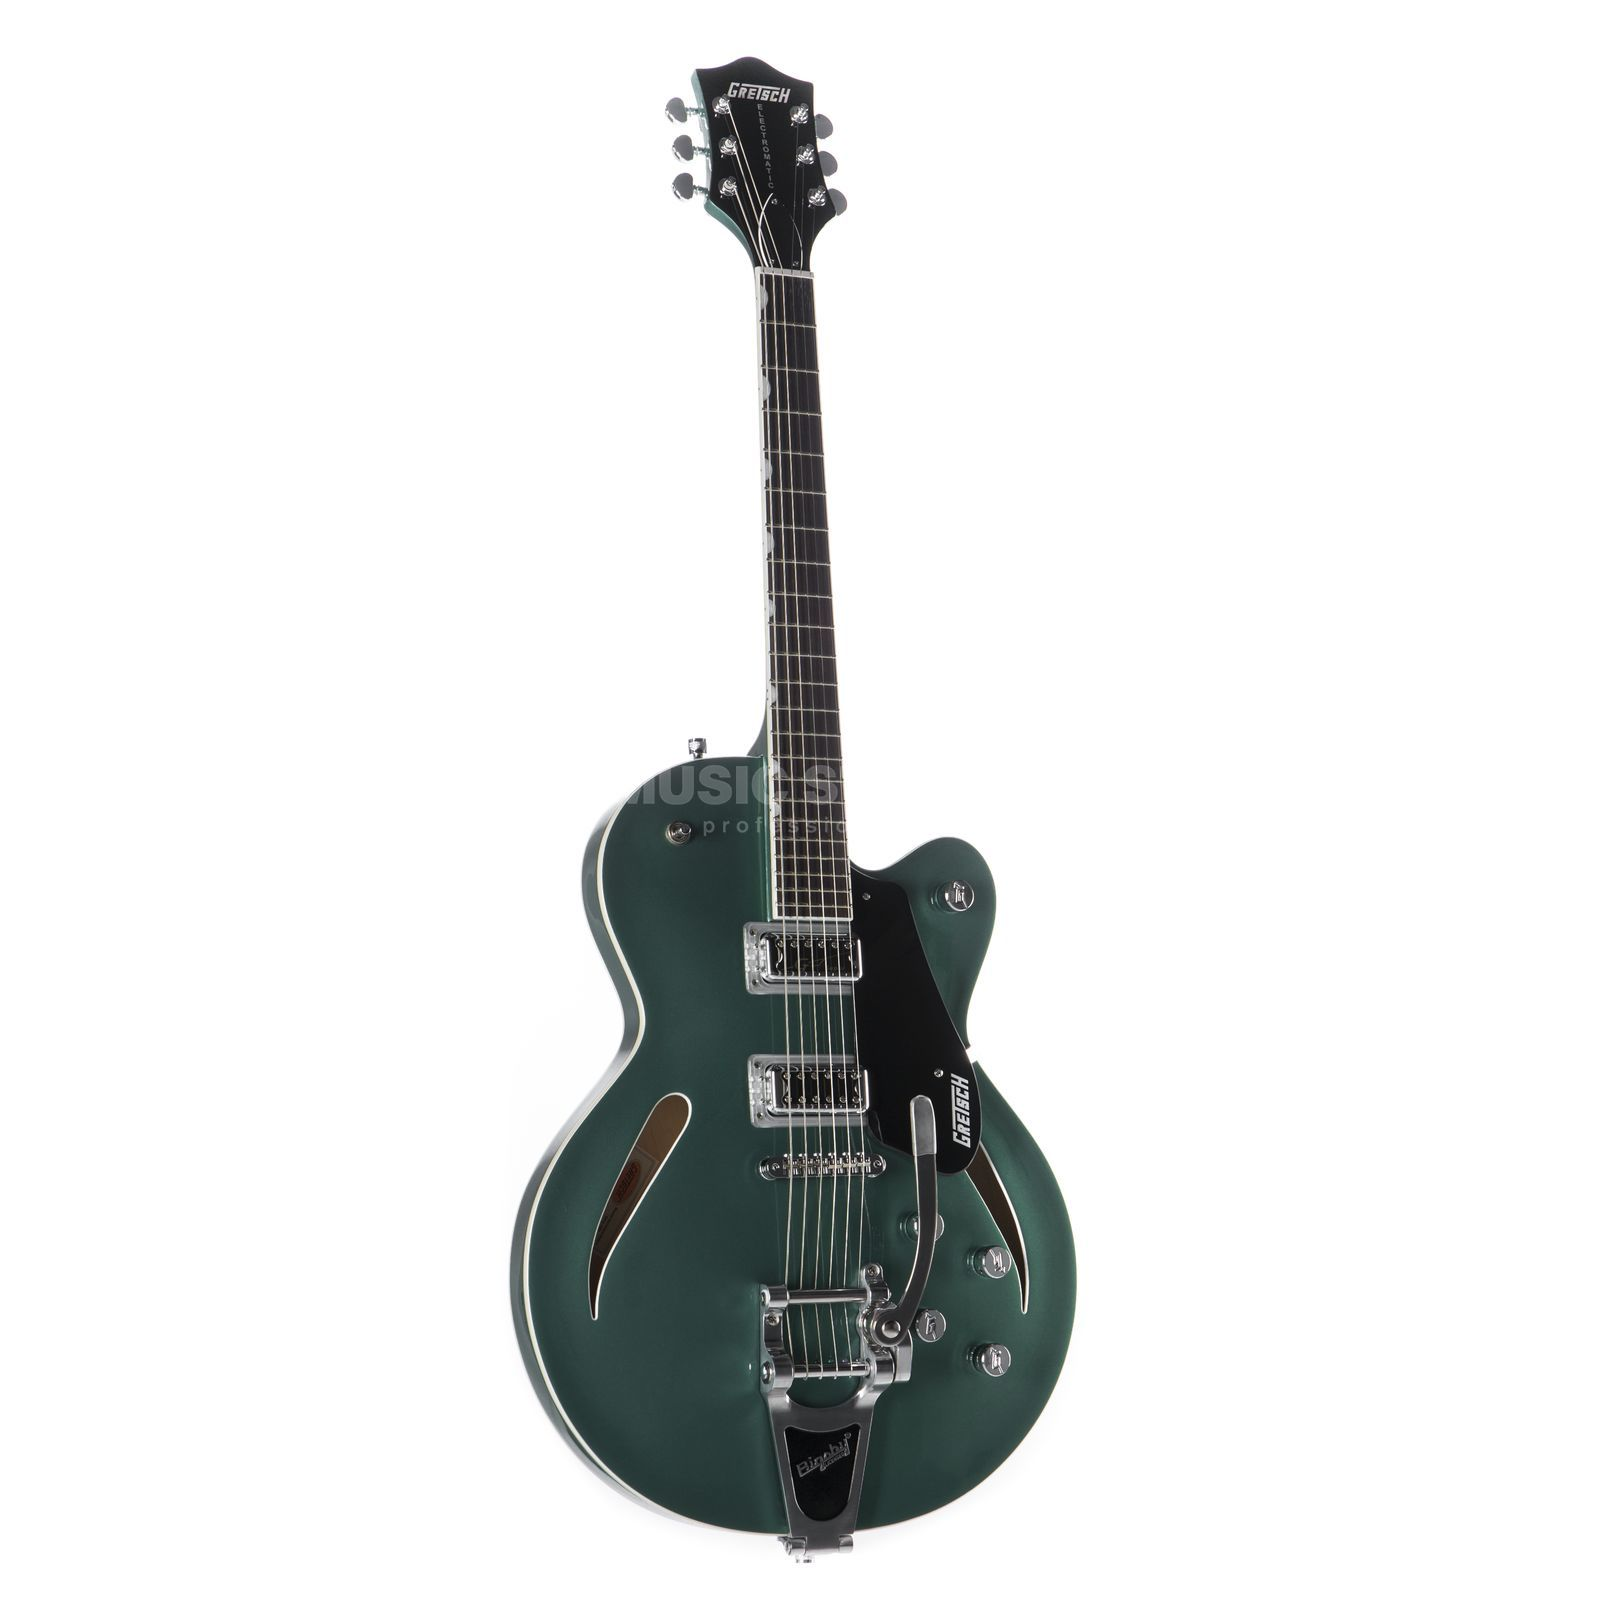 Gretsch G5620T-CB Electromatic GRN Center-Block Georgia Green Produktbillede